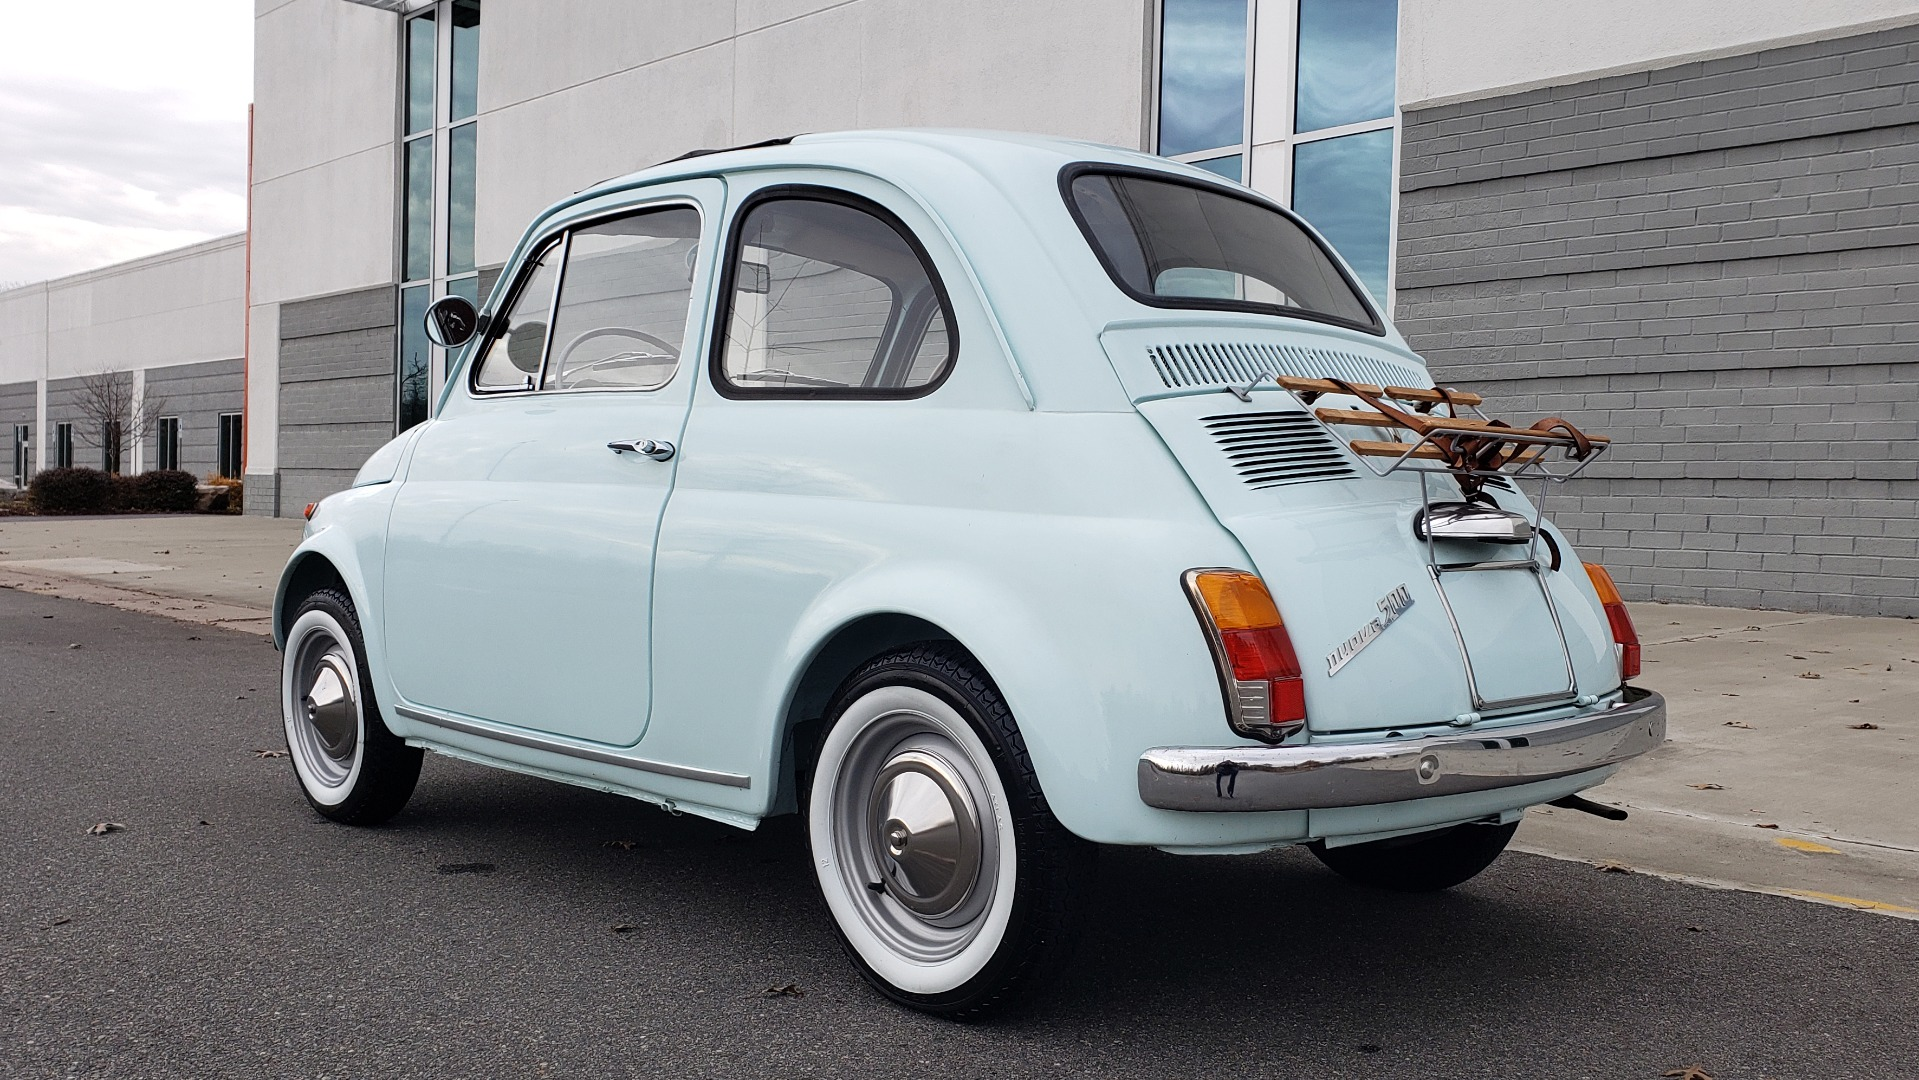 Used 1968 FIAT 500 NUOVA / SOFT-TOP / LUGGAGE RACK / RESTORED, LIKE NEW for sale $21,900 at Formula Imports in Charlotte NC 28227 5